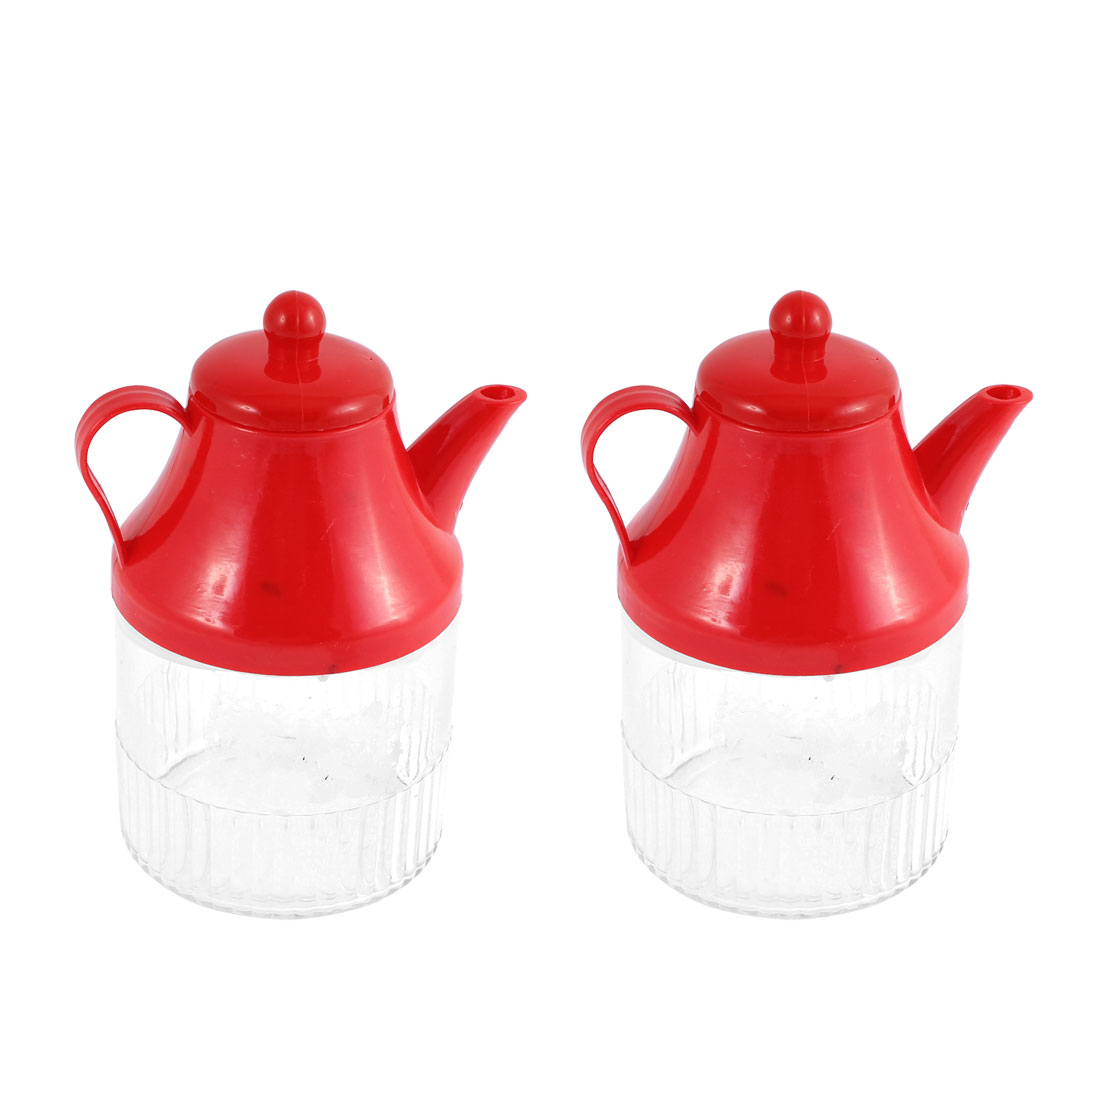 Kitchenware Plastic Liquid Oil Flavoring Soy Vinegar Cruet Bottle Holder 400ml 2 Pcs